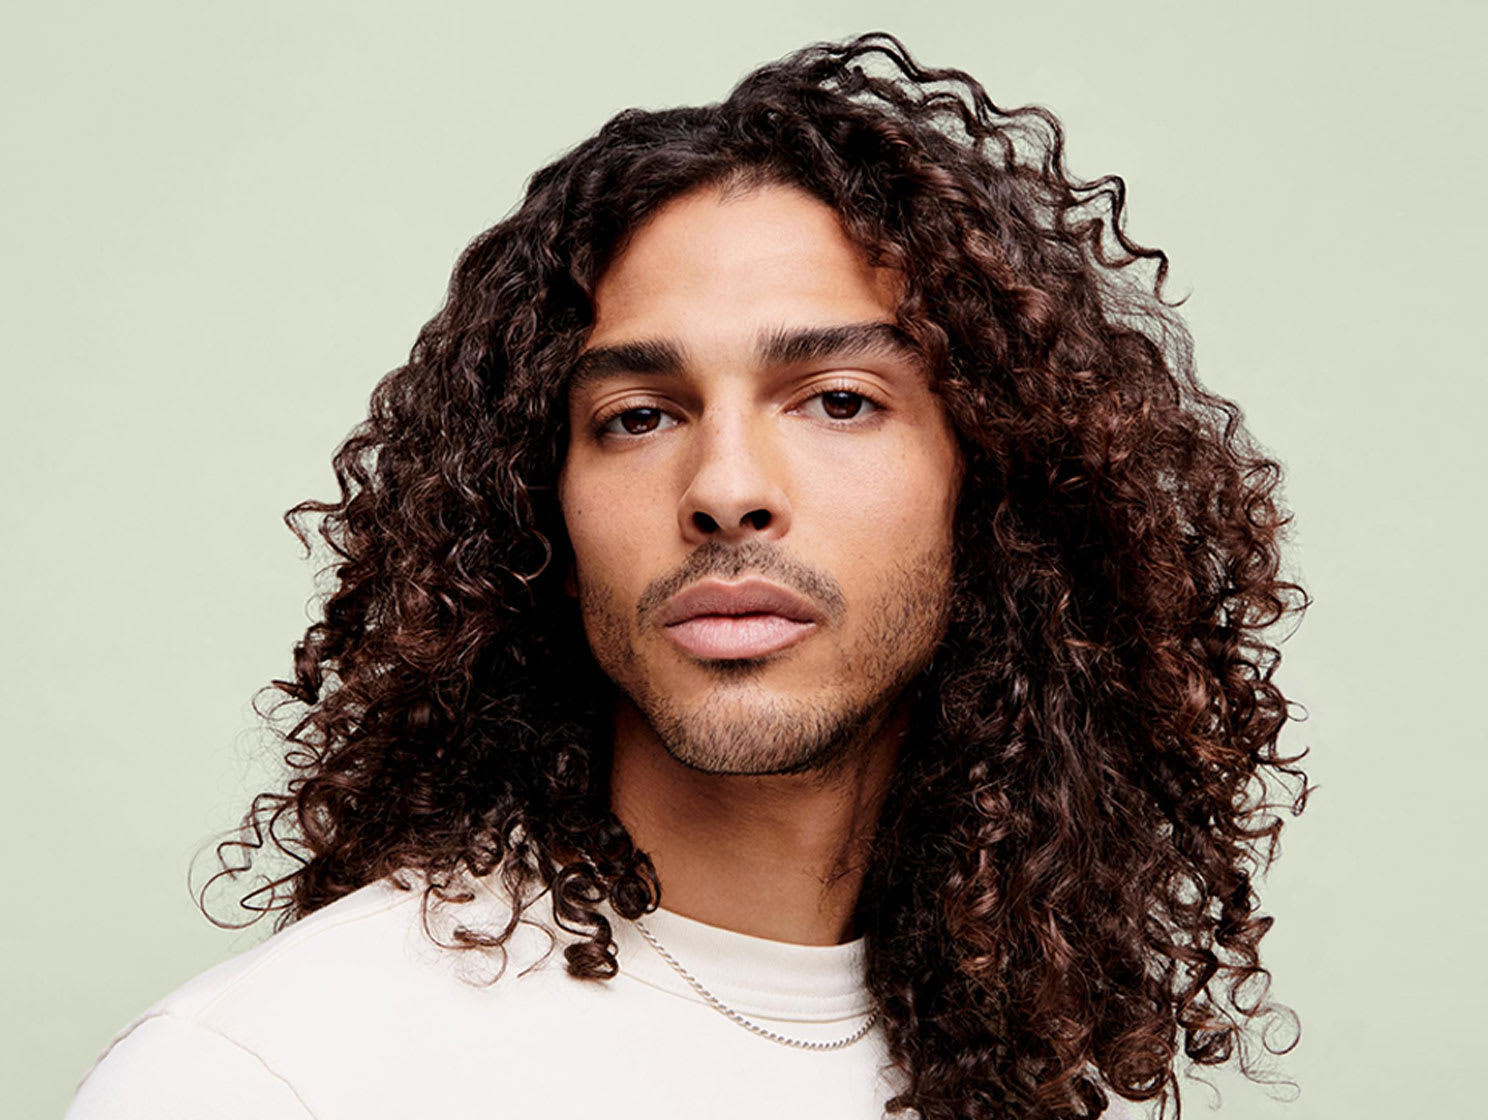 man with brown curly hair